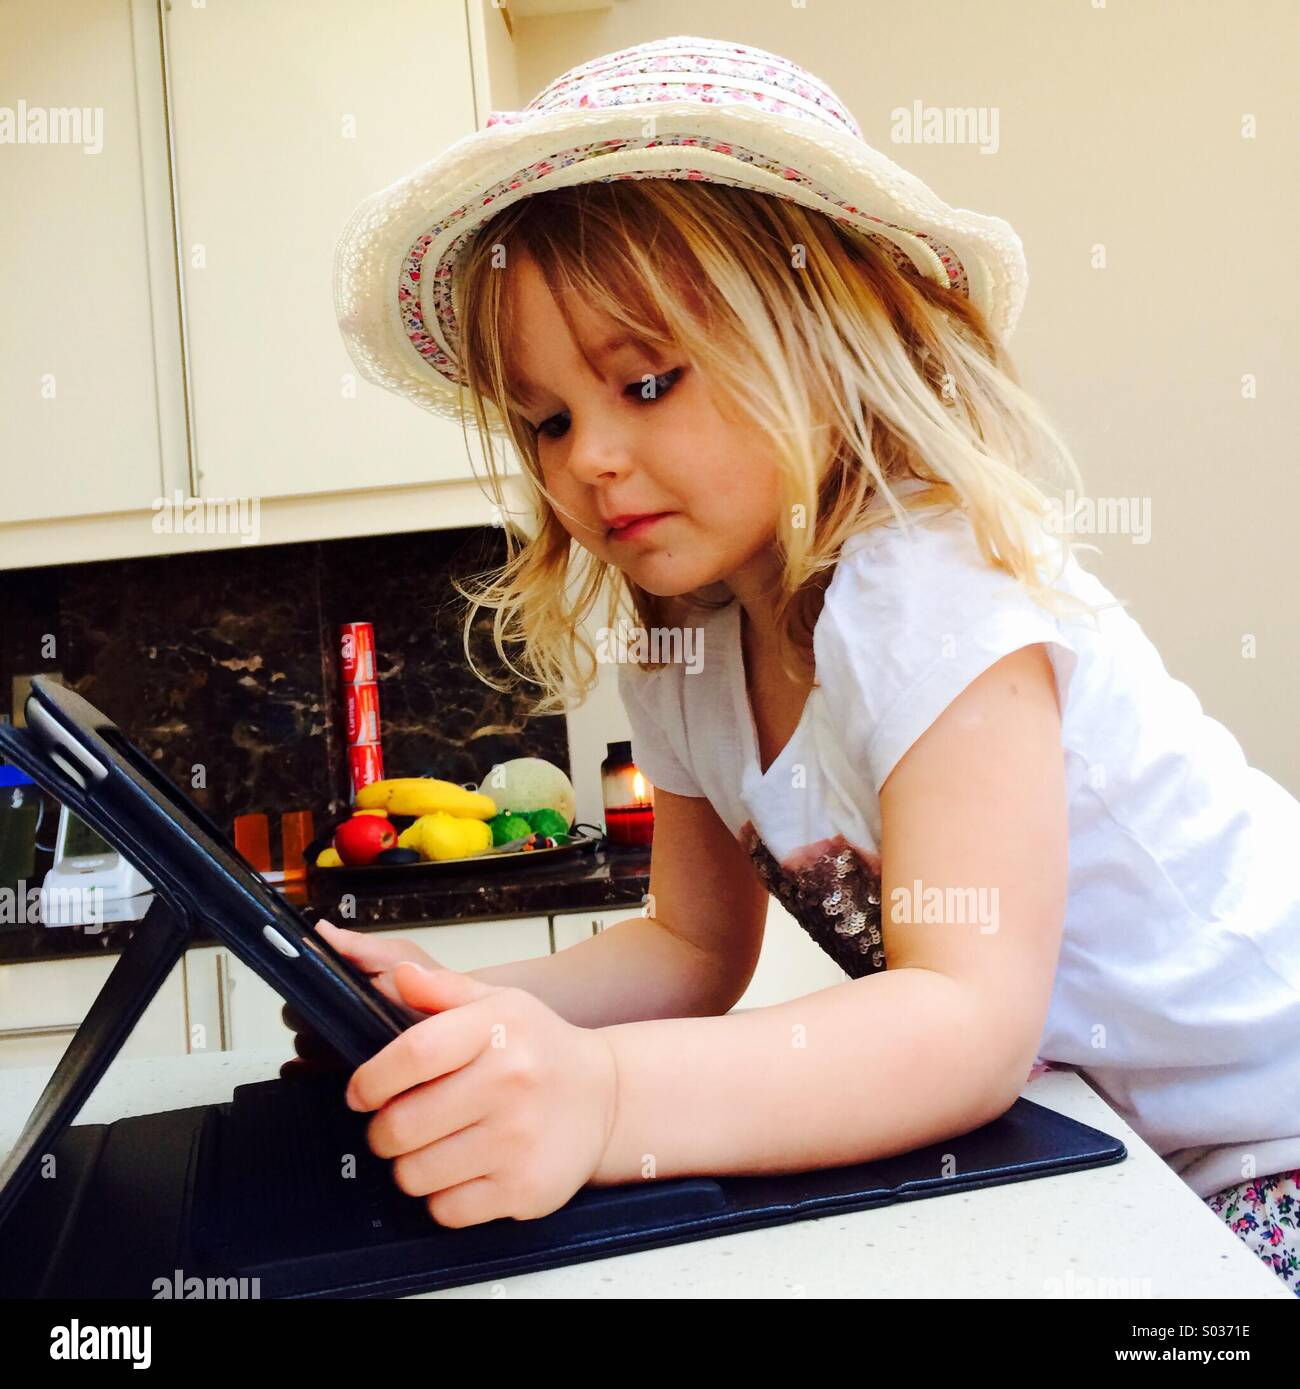 Small girl with a hat on looking at an iPad - Stock Image